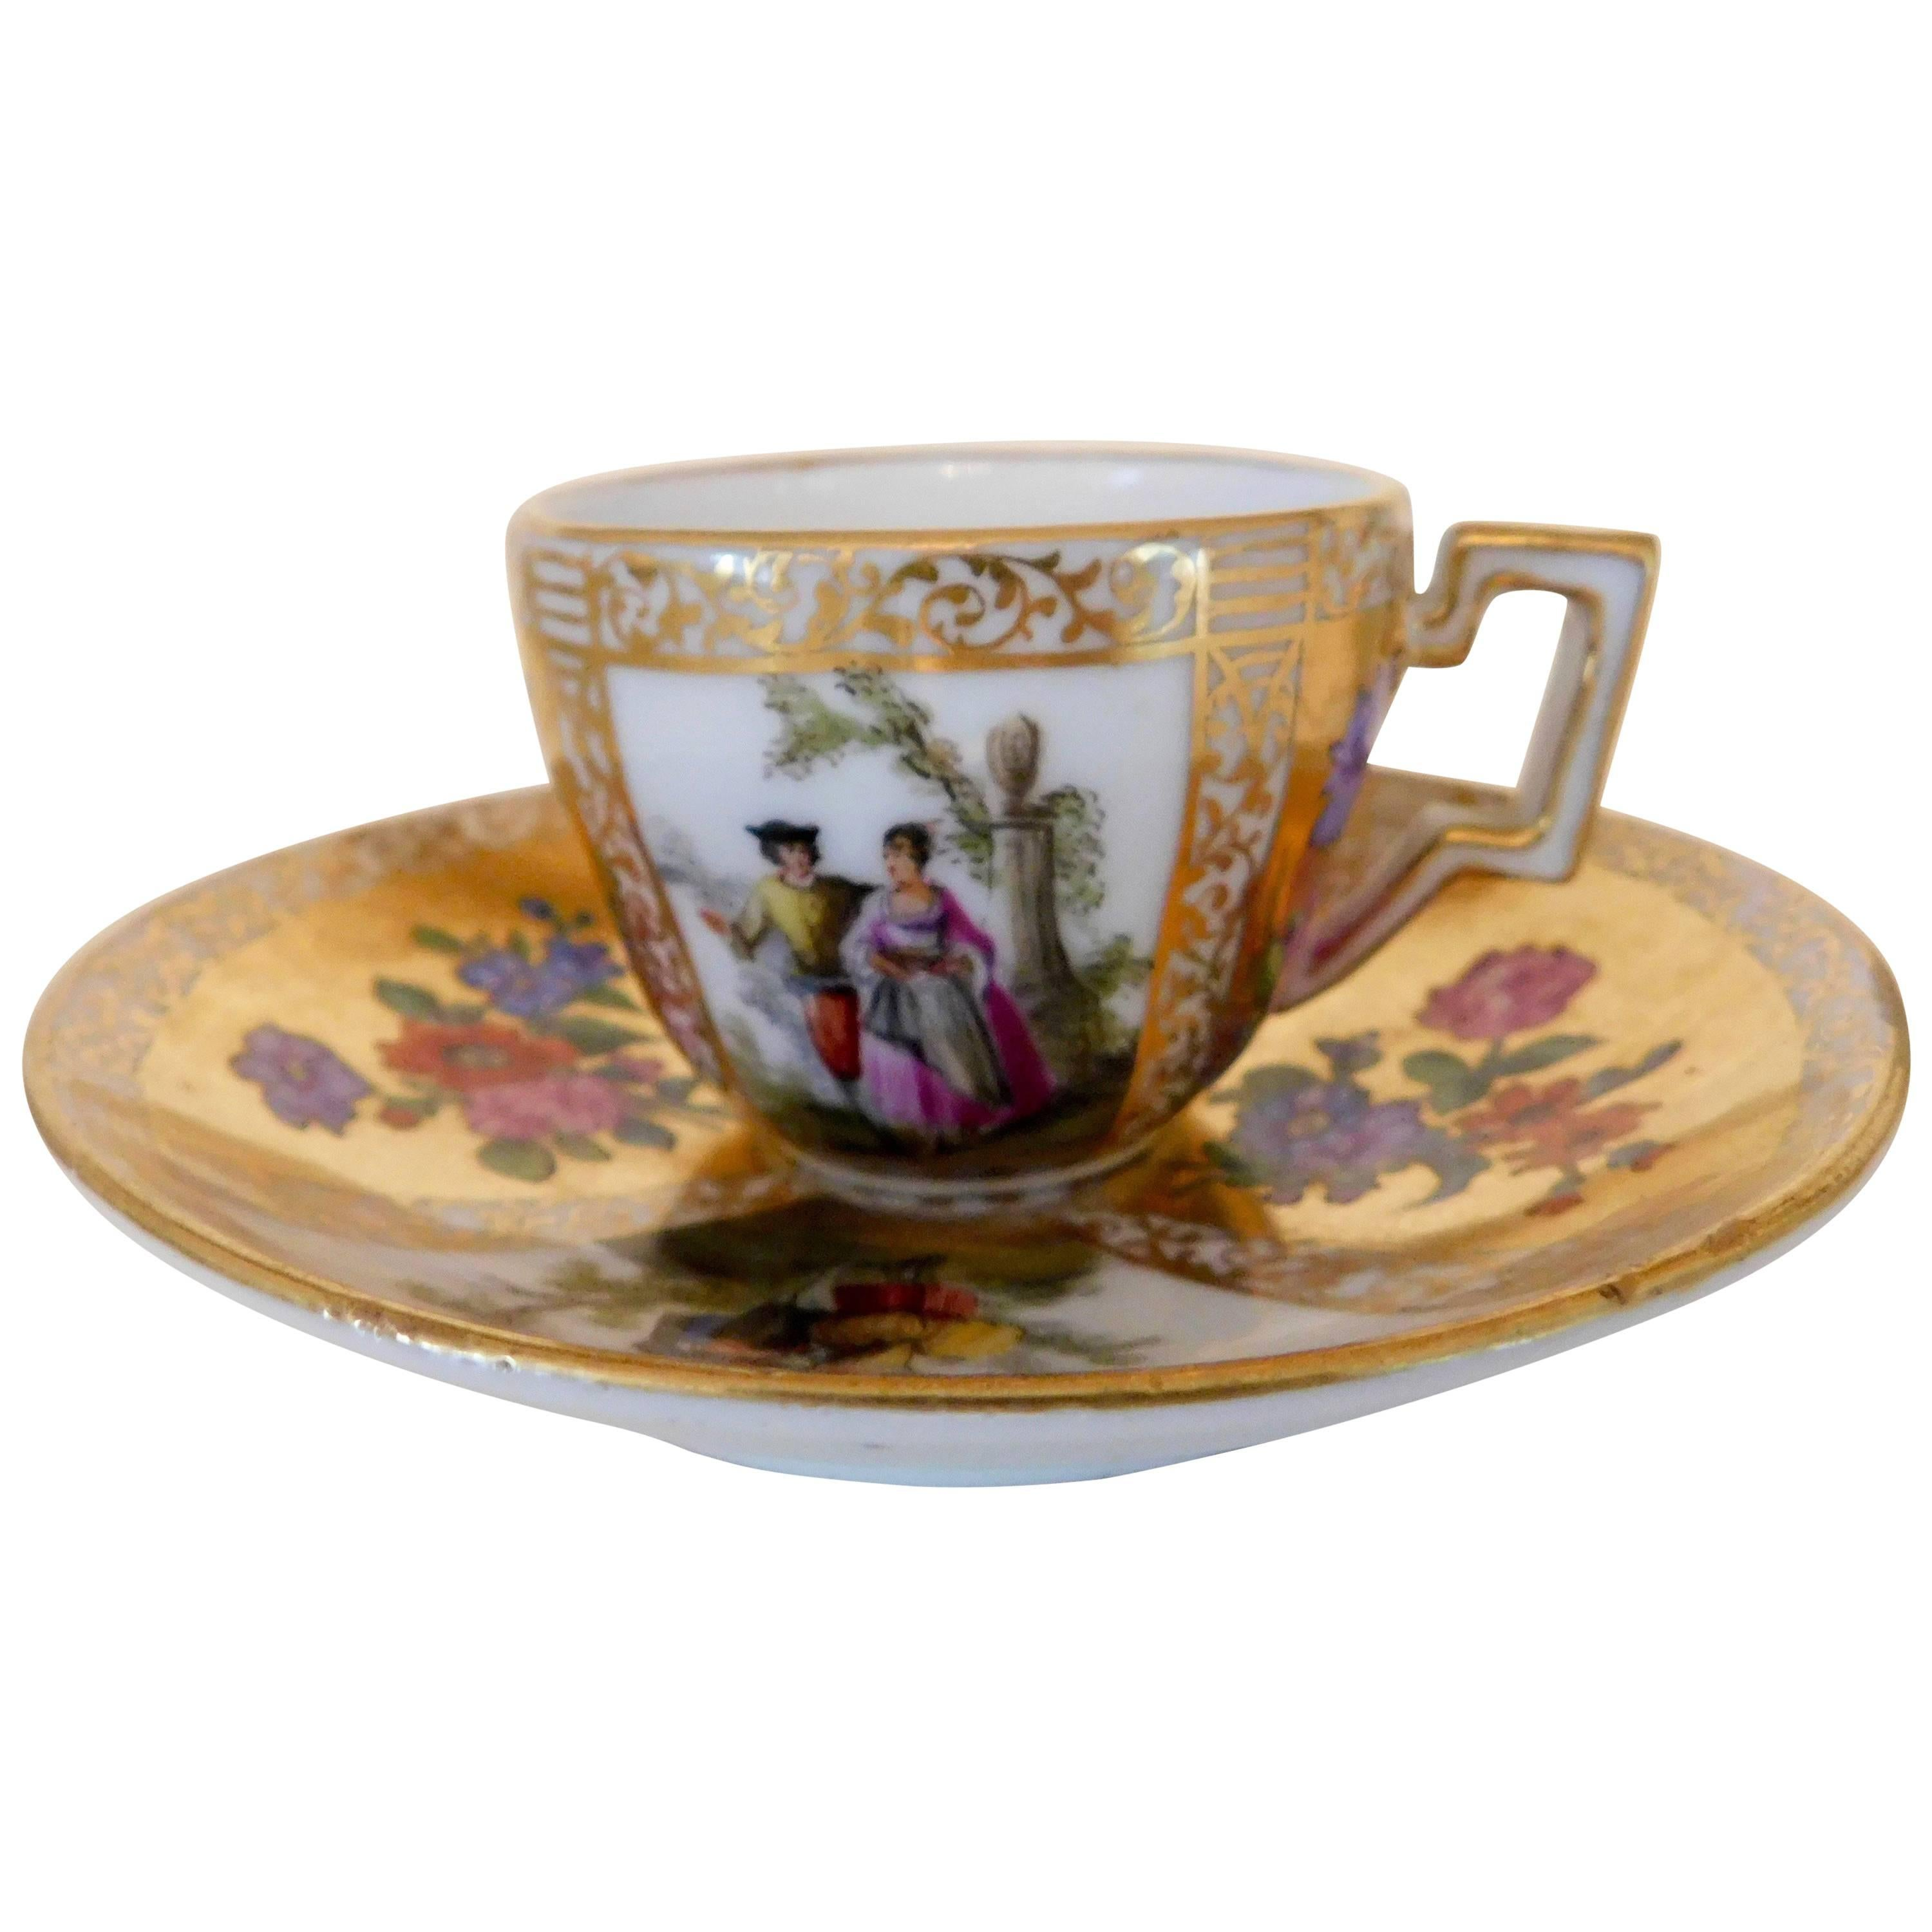 Early 18th Century Antique Meissen Porcelain Miniature Cup and Saucer